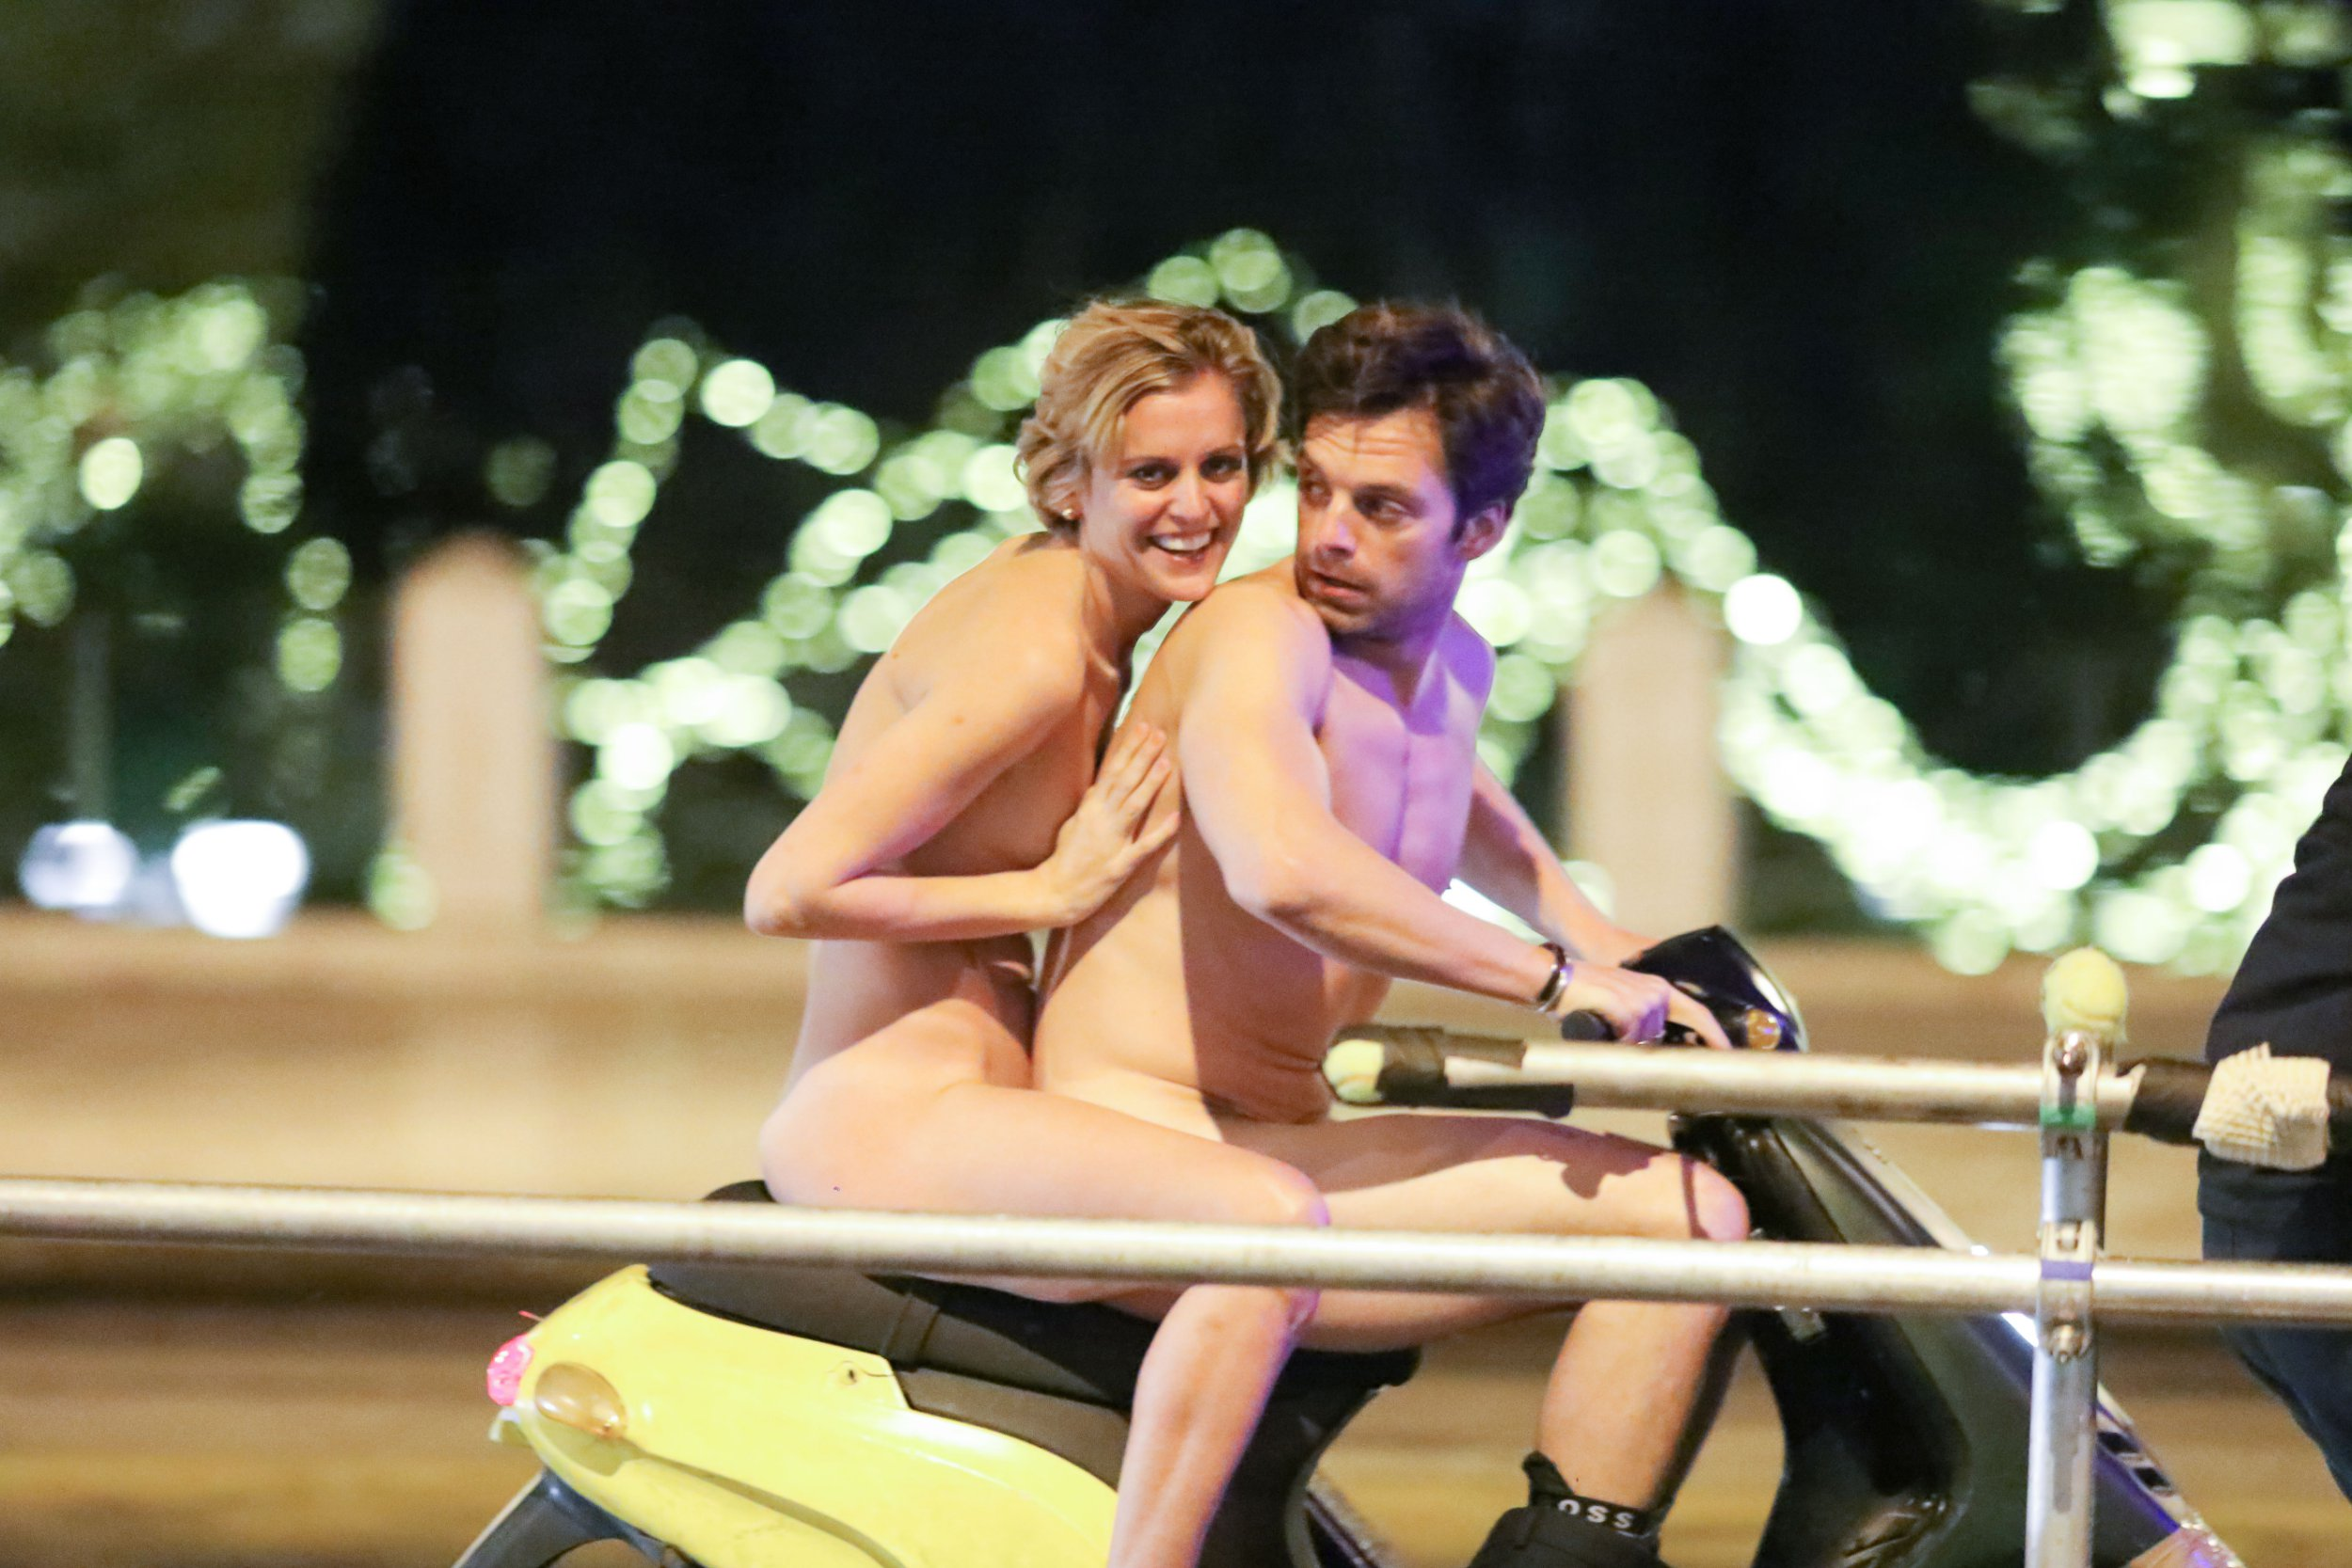 "EXCLUSIVE PICTURES - US actor Sebastian Stan and Irish Actress Denise Gough are completely nude riding on a scooter through the centre of Athens while filming scenes for their upcoming movie ""Monday"" on November 28th 2018 in Athens, Greece."